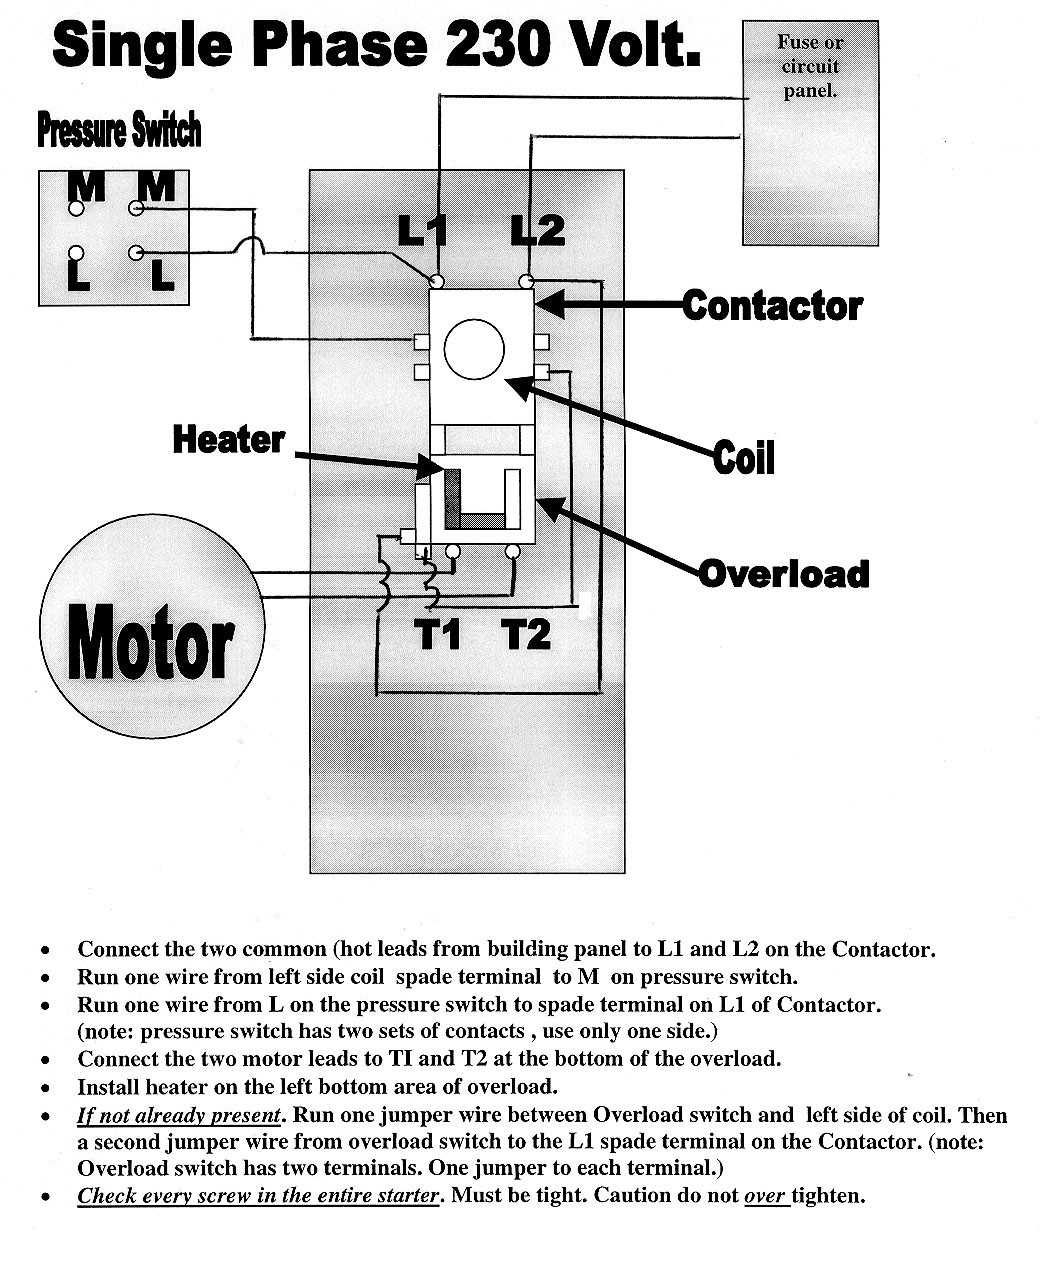 cutler hammer starter wiring diagram elegant 3tf5222 0d contactors of three phase motor wiring diagram